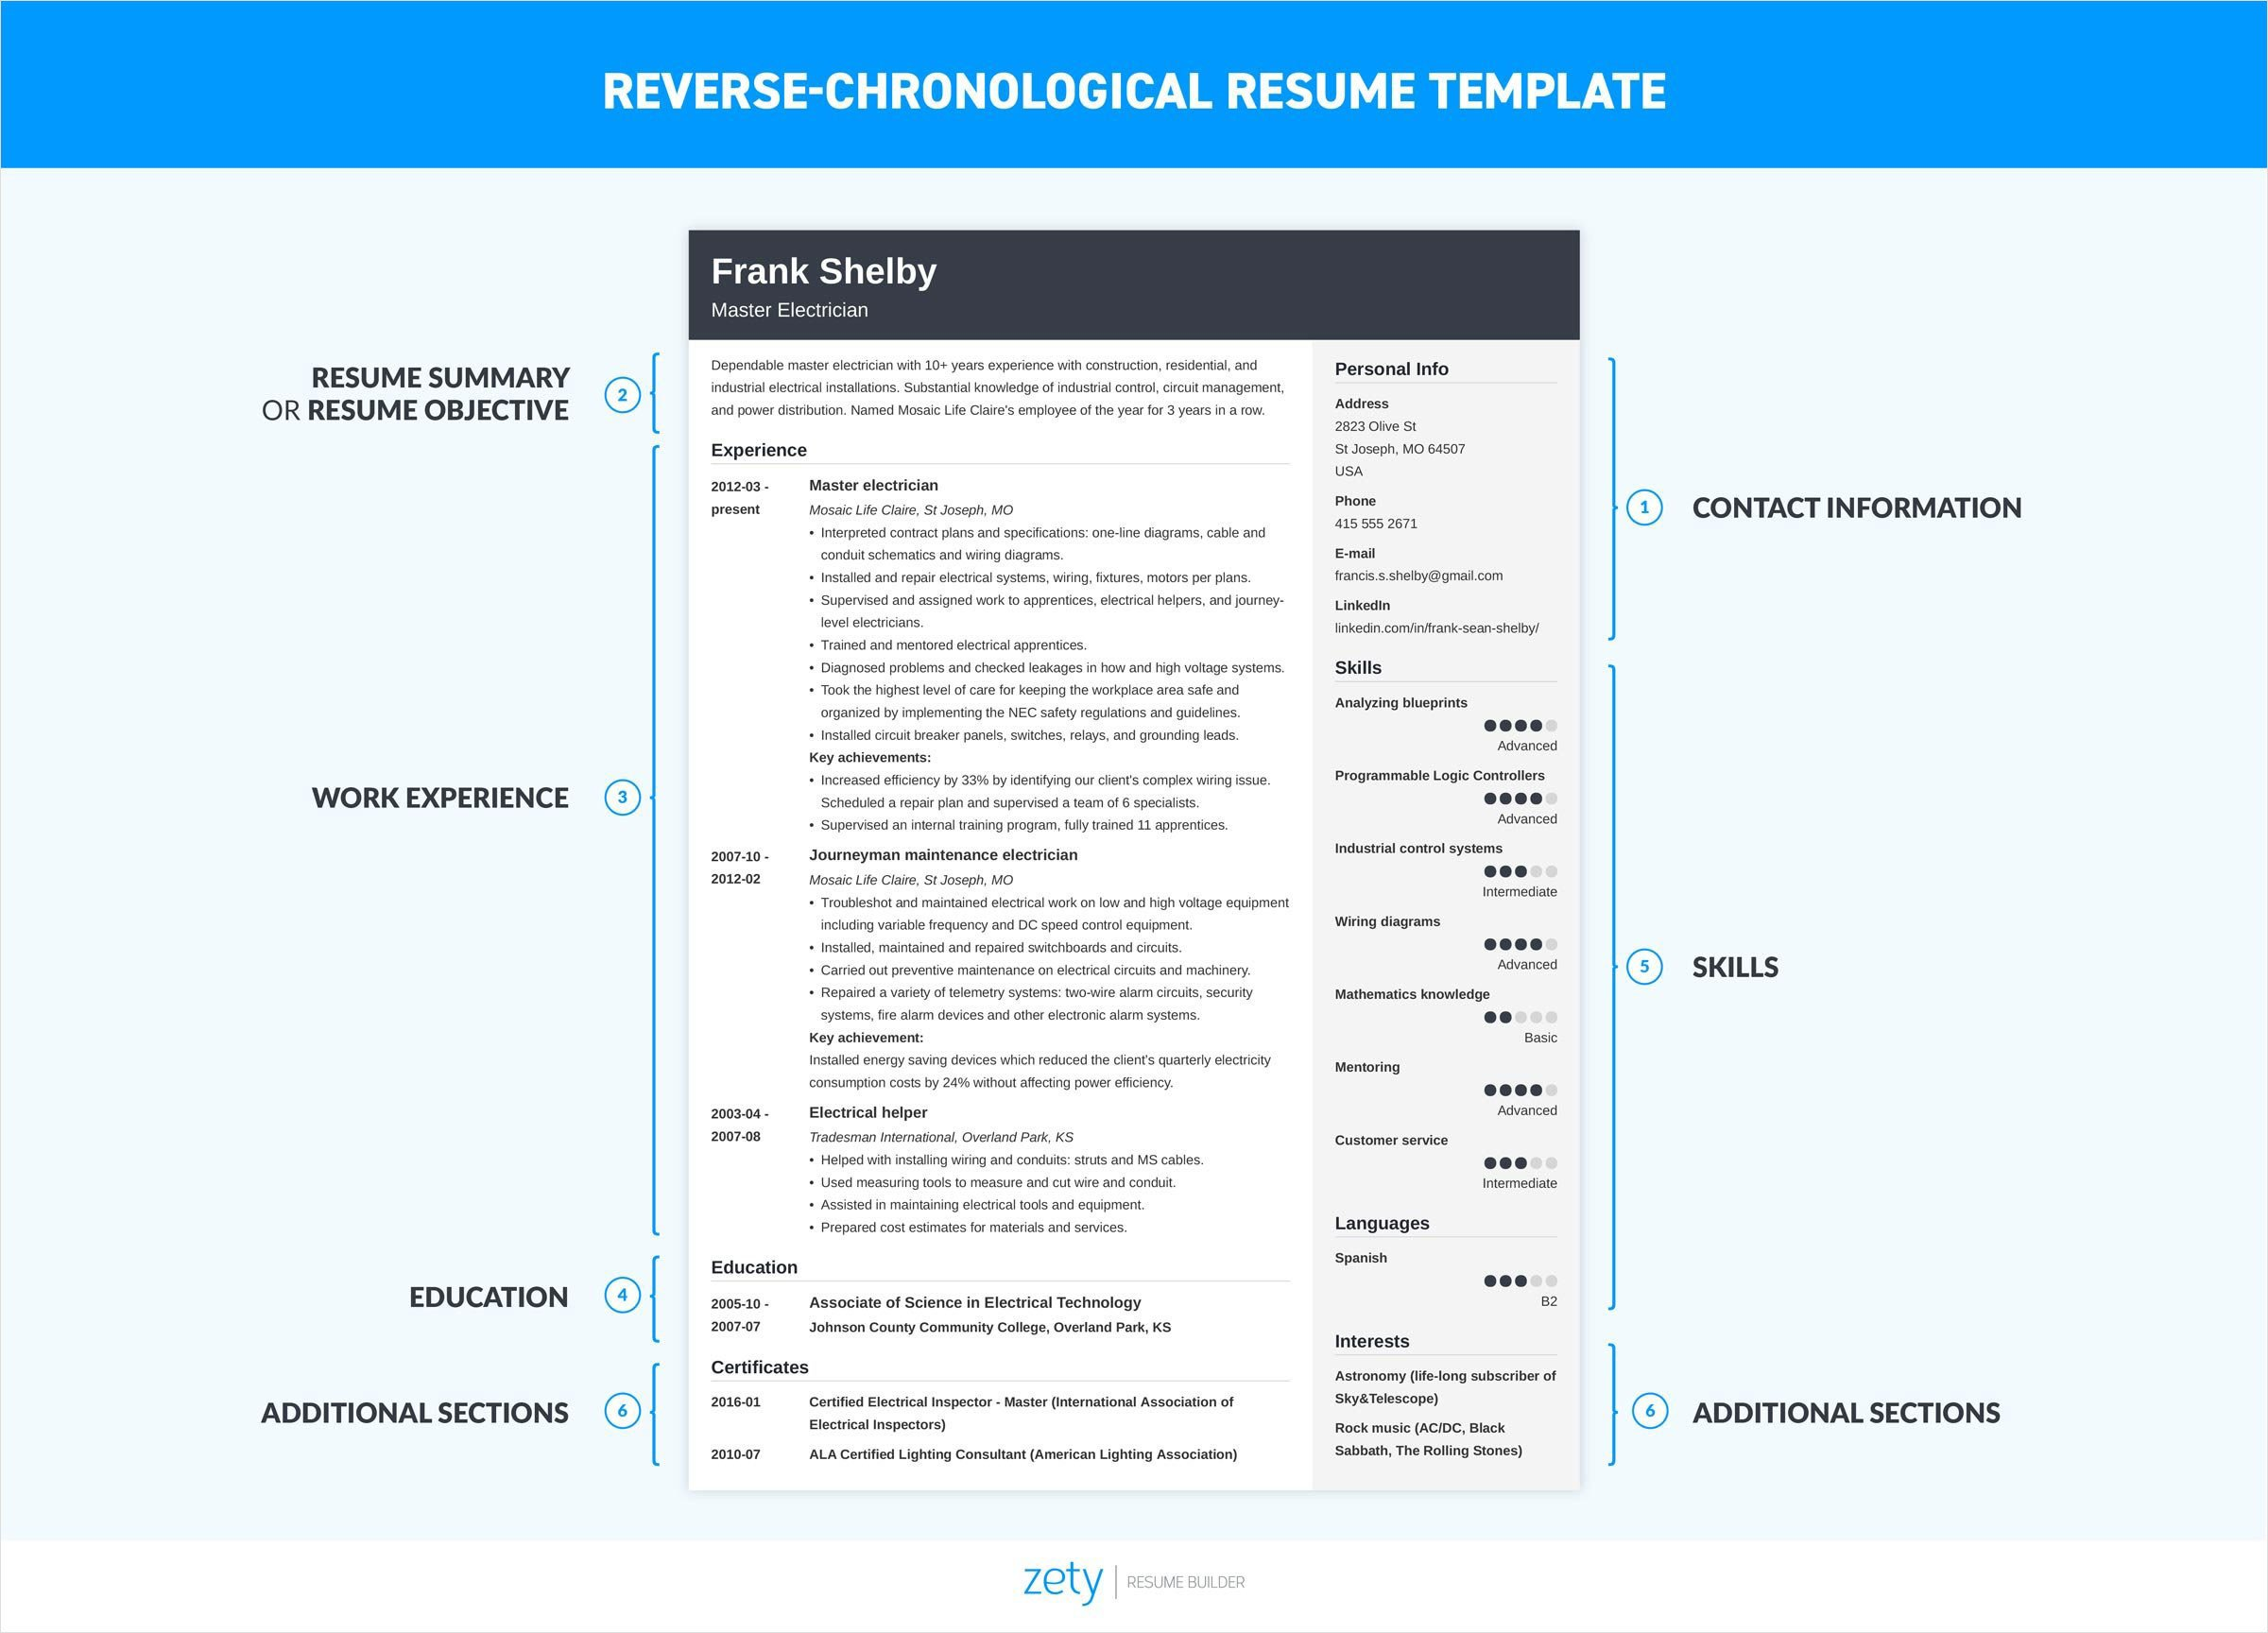 What To Have On A Resume.How To Make A Resume For A Job Professional Writing Guide